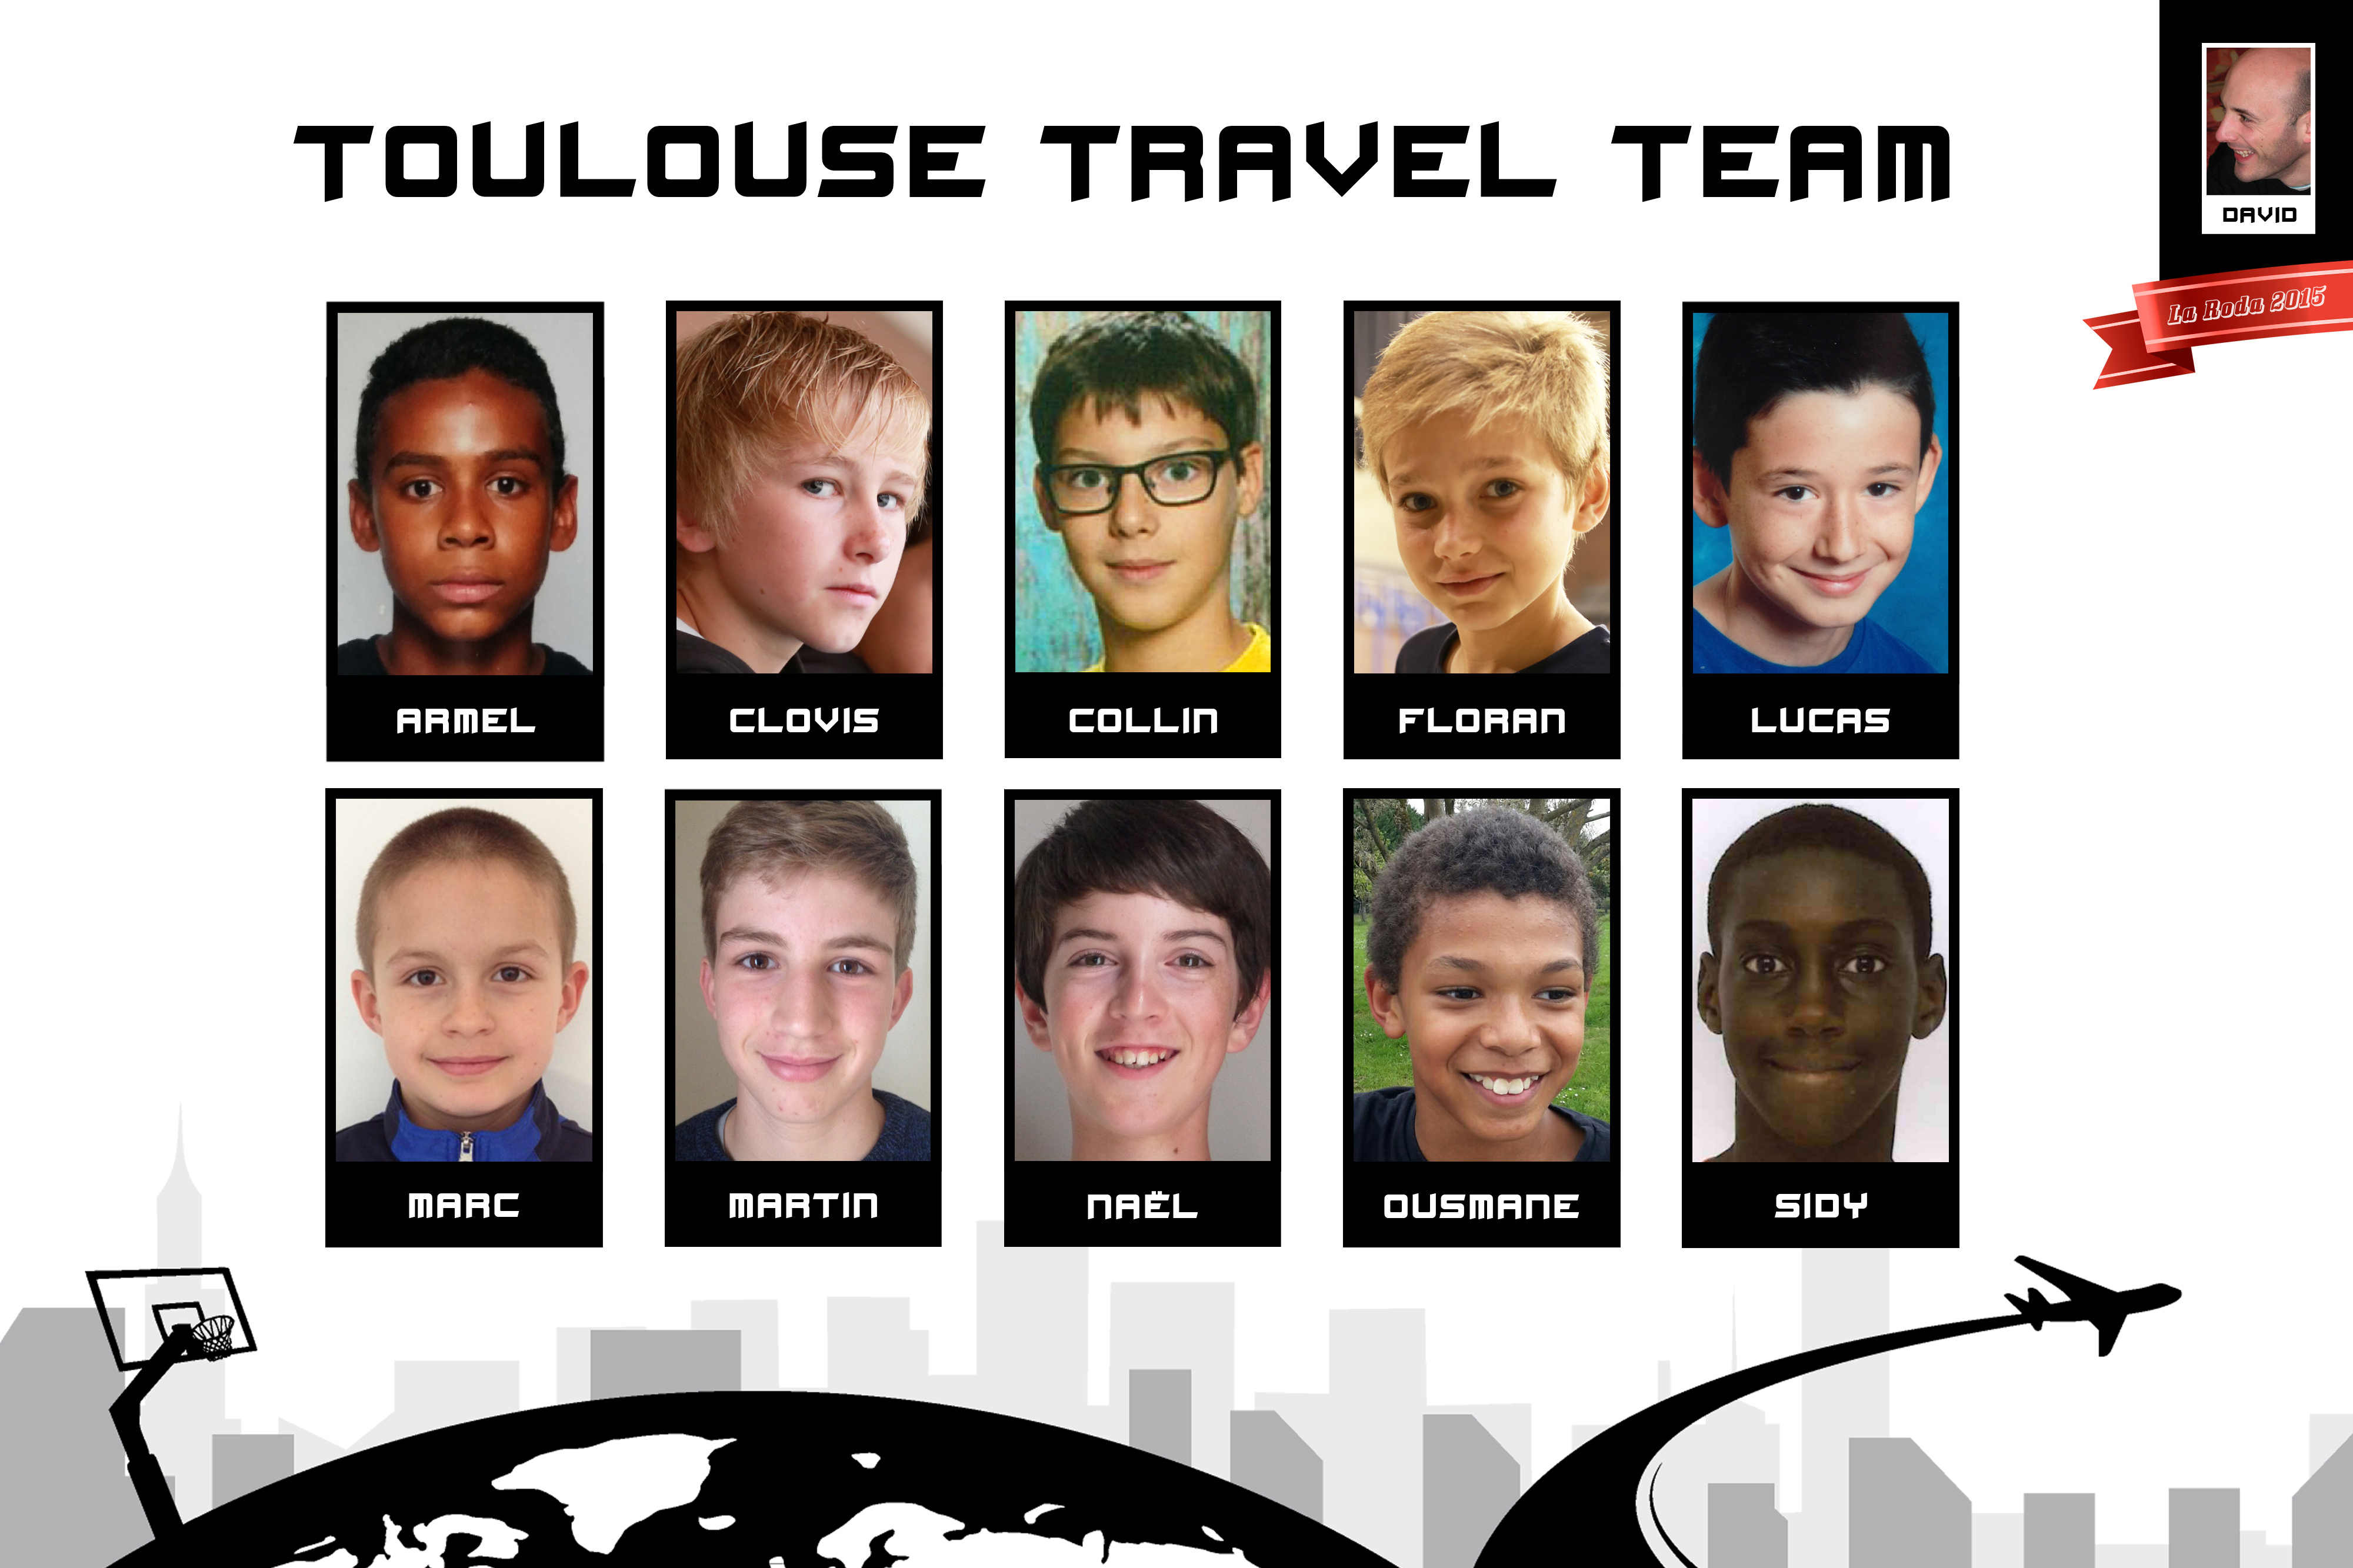 Toulouse Travel Team